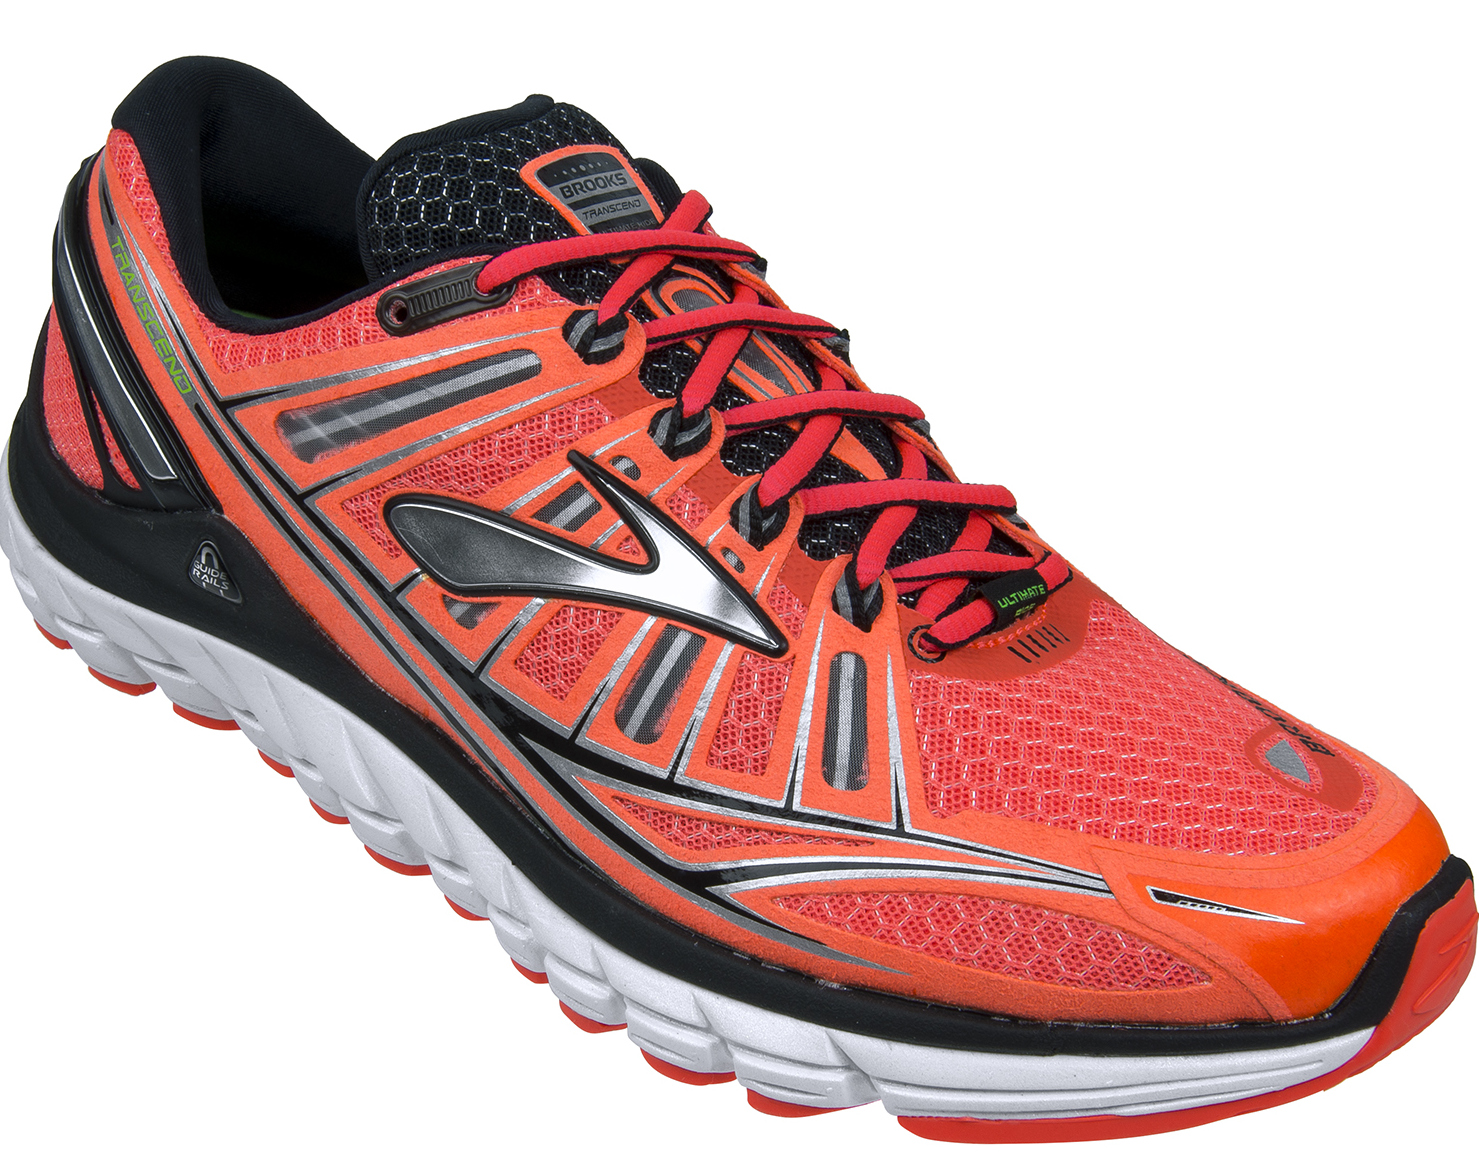 Trainer wars: Brooks Transcend box clever with spaceship delivery